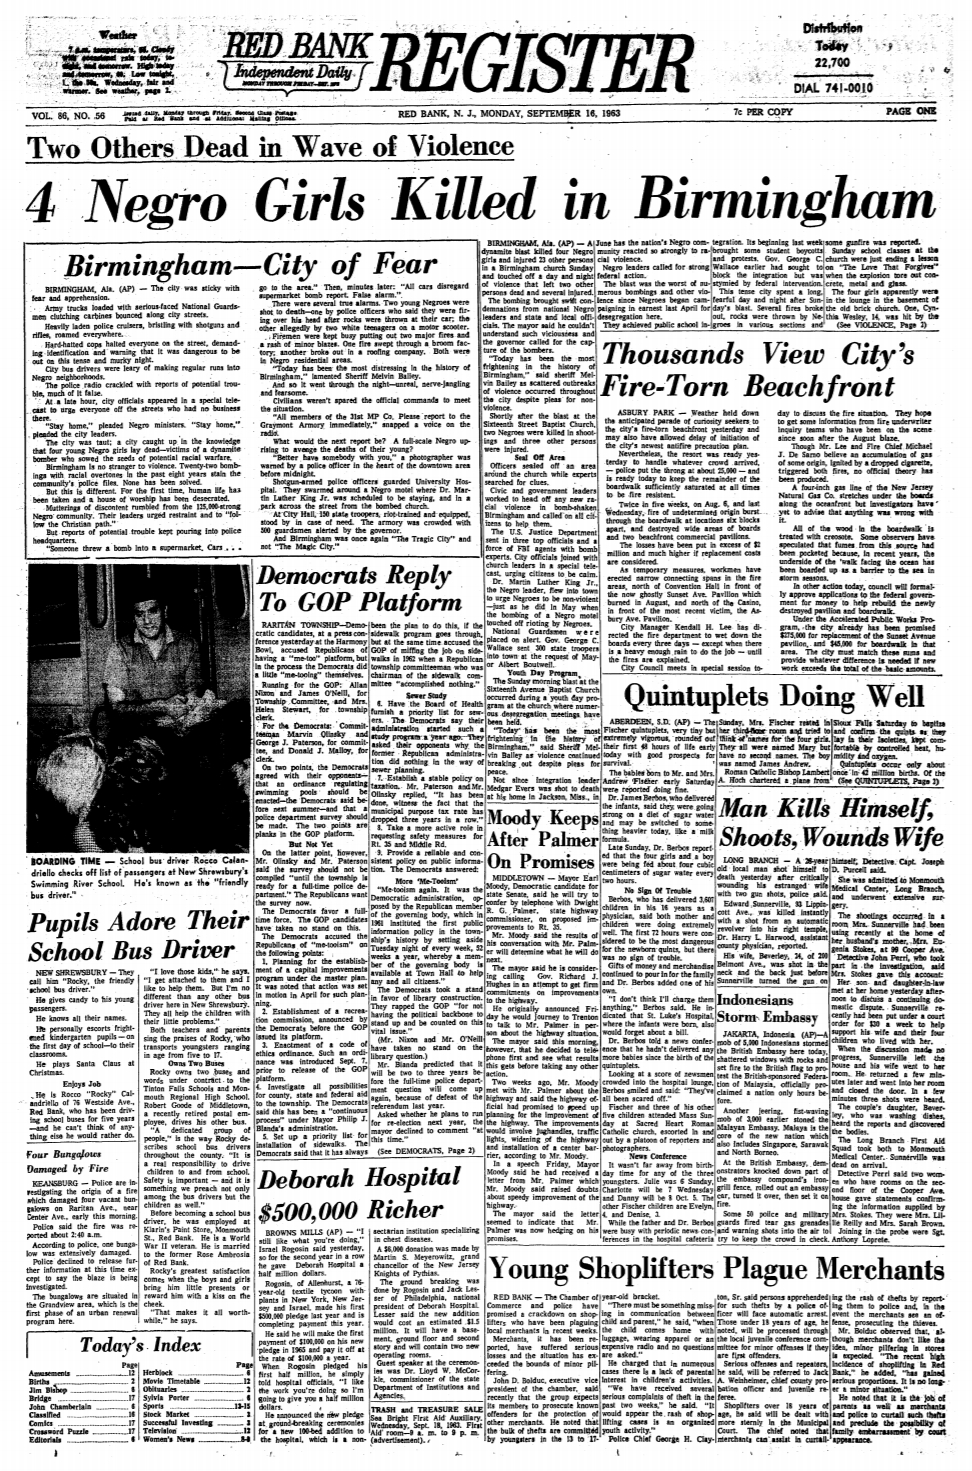 an issue of Red Bank Register [ 1963 September 16 ]